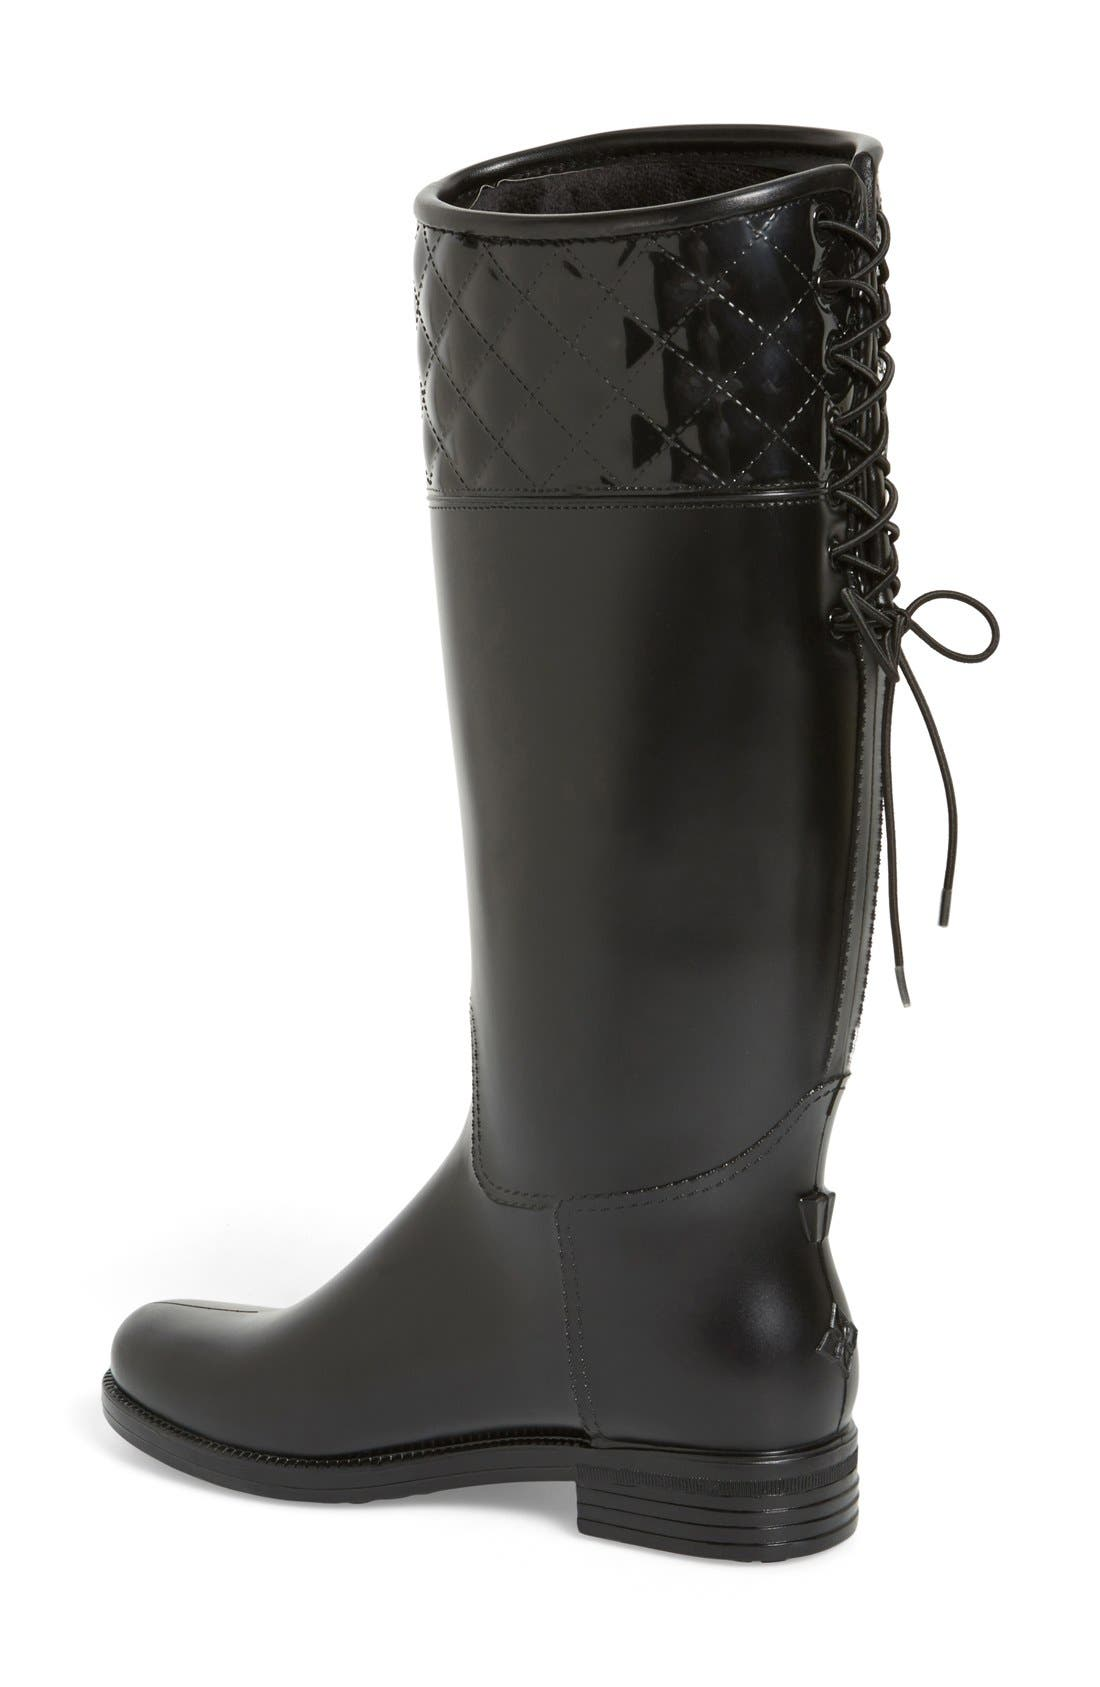 Alternate Image 2  - däv 'Victoria' Waterproof Tall Rain Boot (Women)